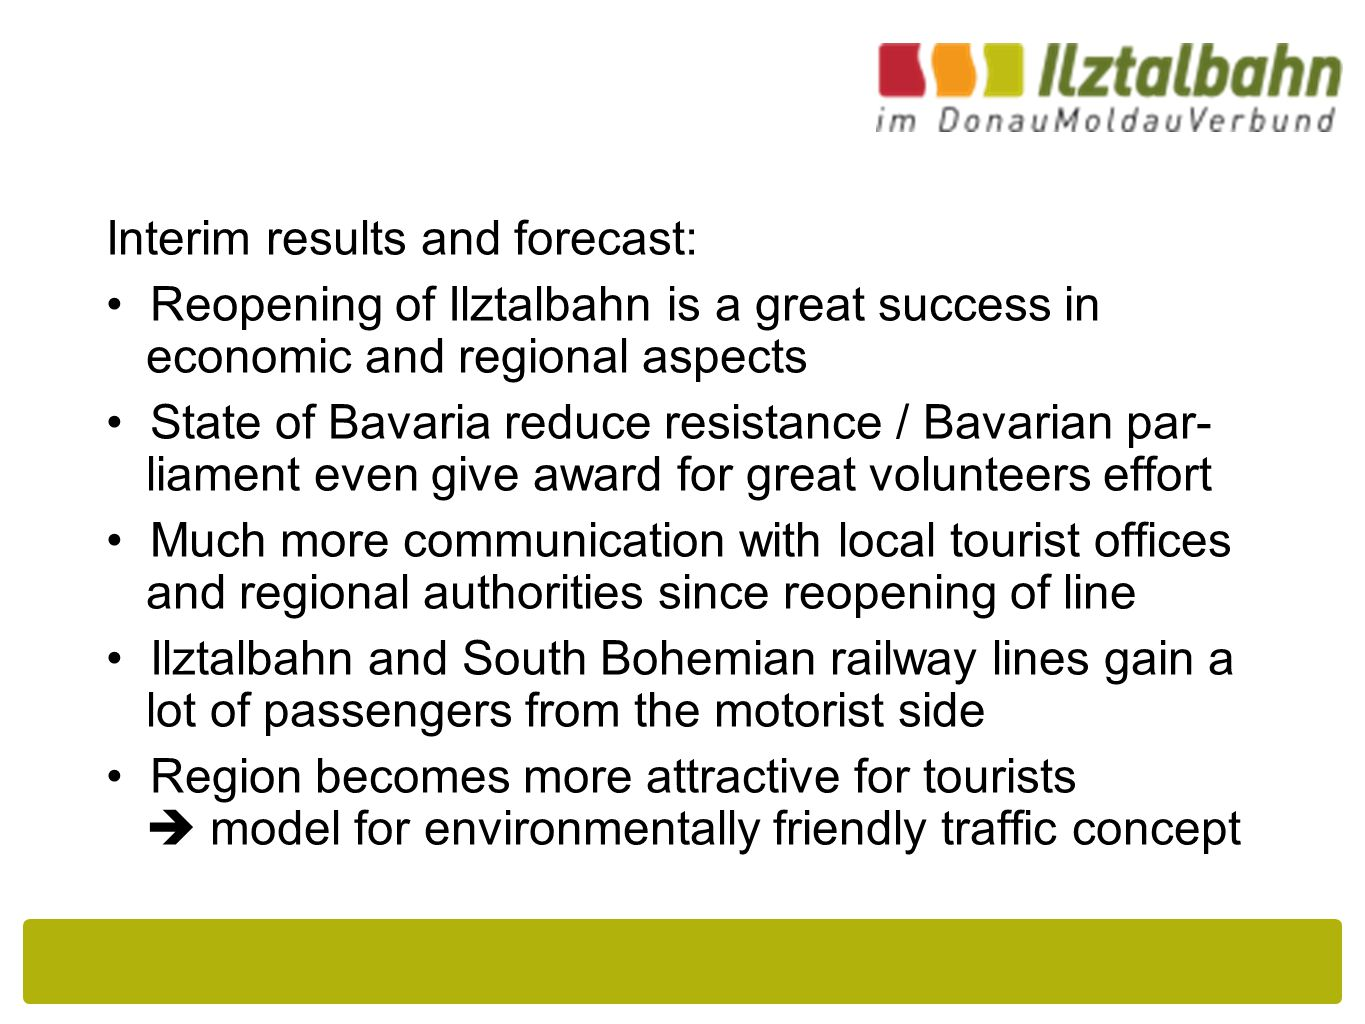 Interim results and forecast: Reopening of Ilztalbahn is a great success in economic and regional aspects State of Bavaria reduce resistance / Bavarian par- liament even give award for great volunteers effort Much more communication with local tourist offices and regional authorities since reopening of line Ilztalbahn and South Bohemian railway lines gain a lot of passengers from the motorist side Region becomes more attractive for tourists  model for environmentally friendly traffic concept